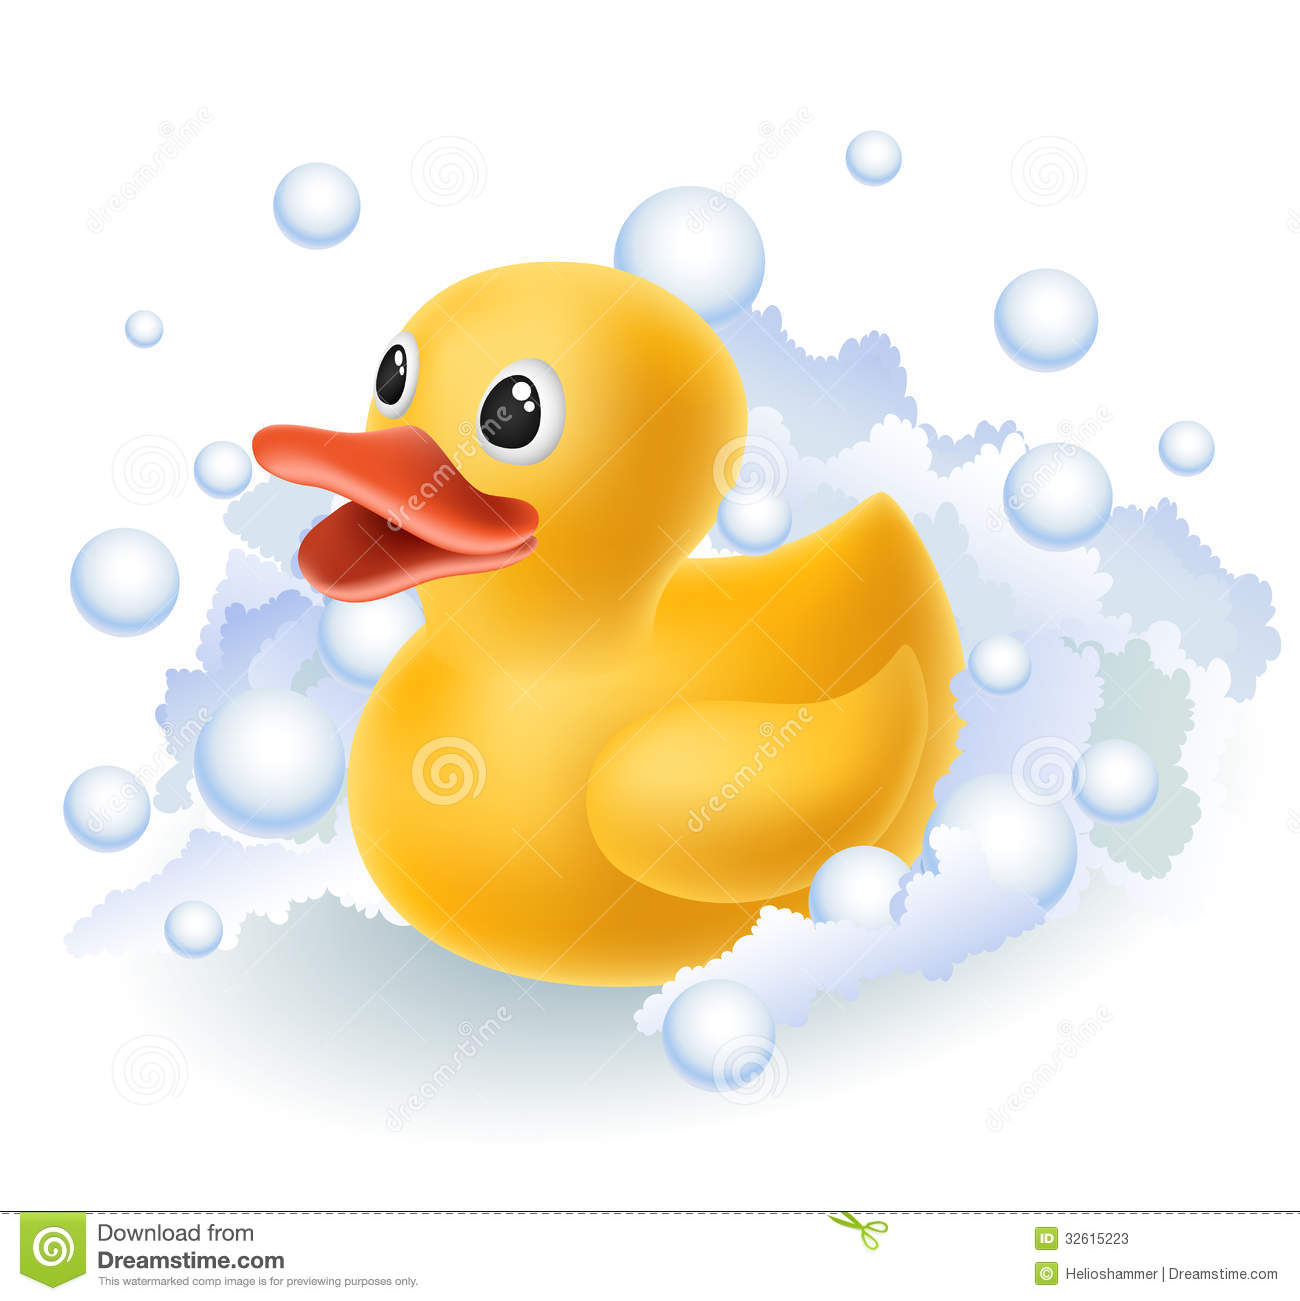 Rubber duck in foam stock vector. Illustration of cute - 32615223